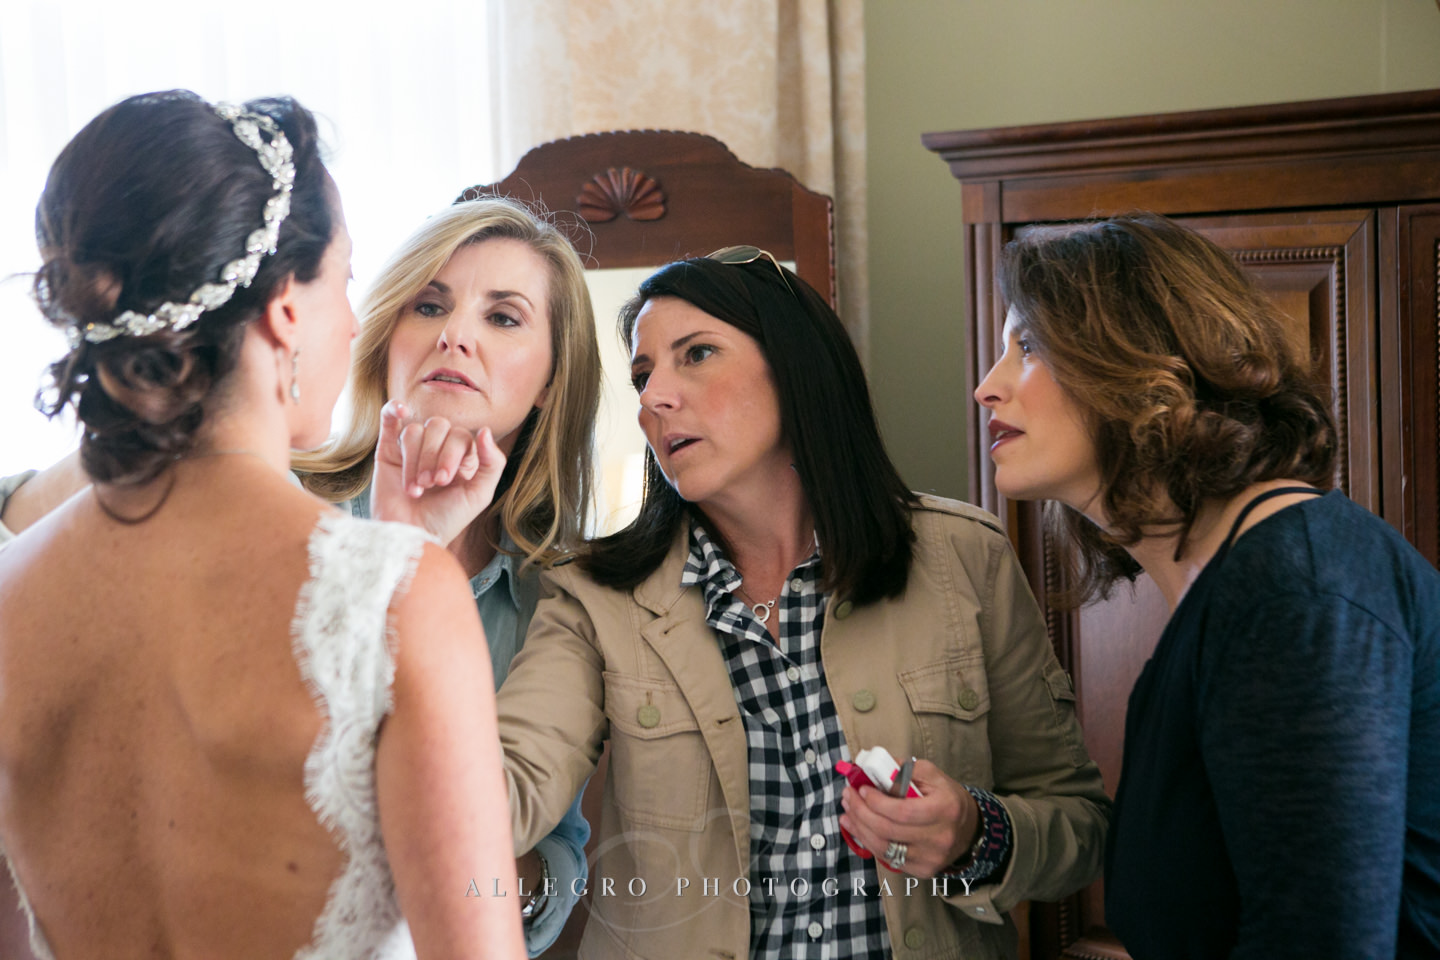 all the friends help the bride -photo by Allegro Photography